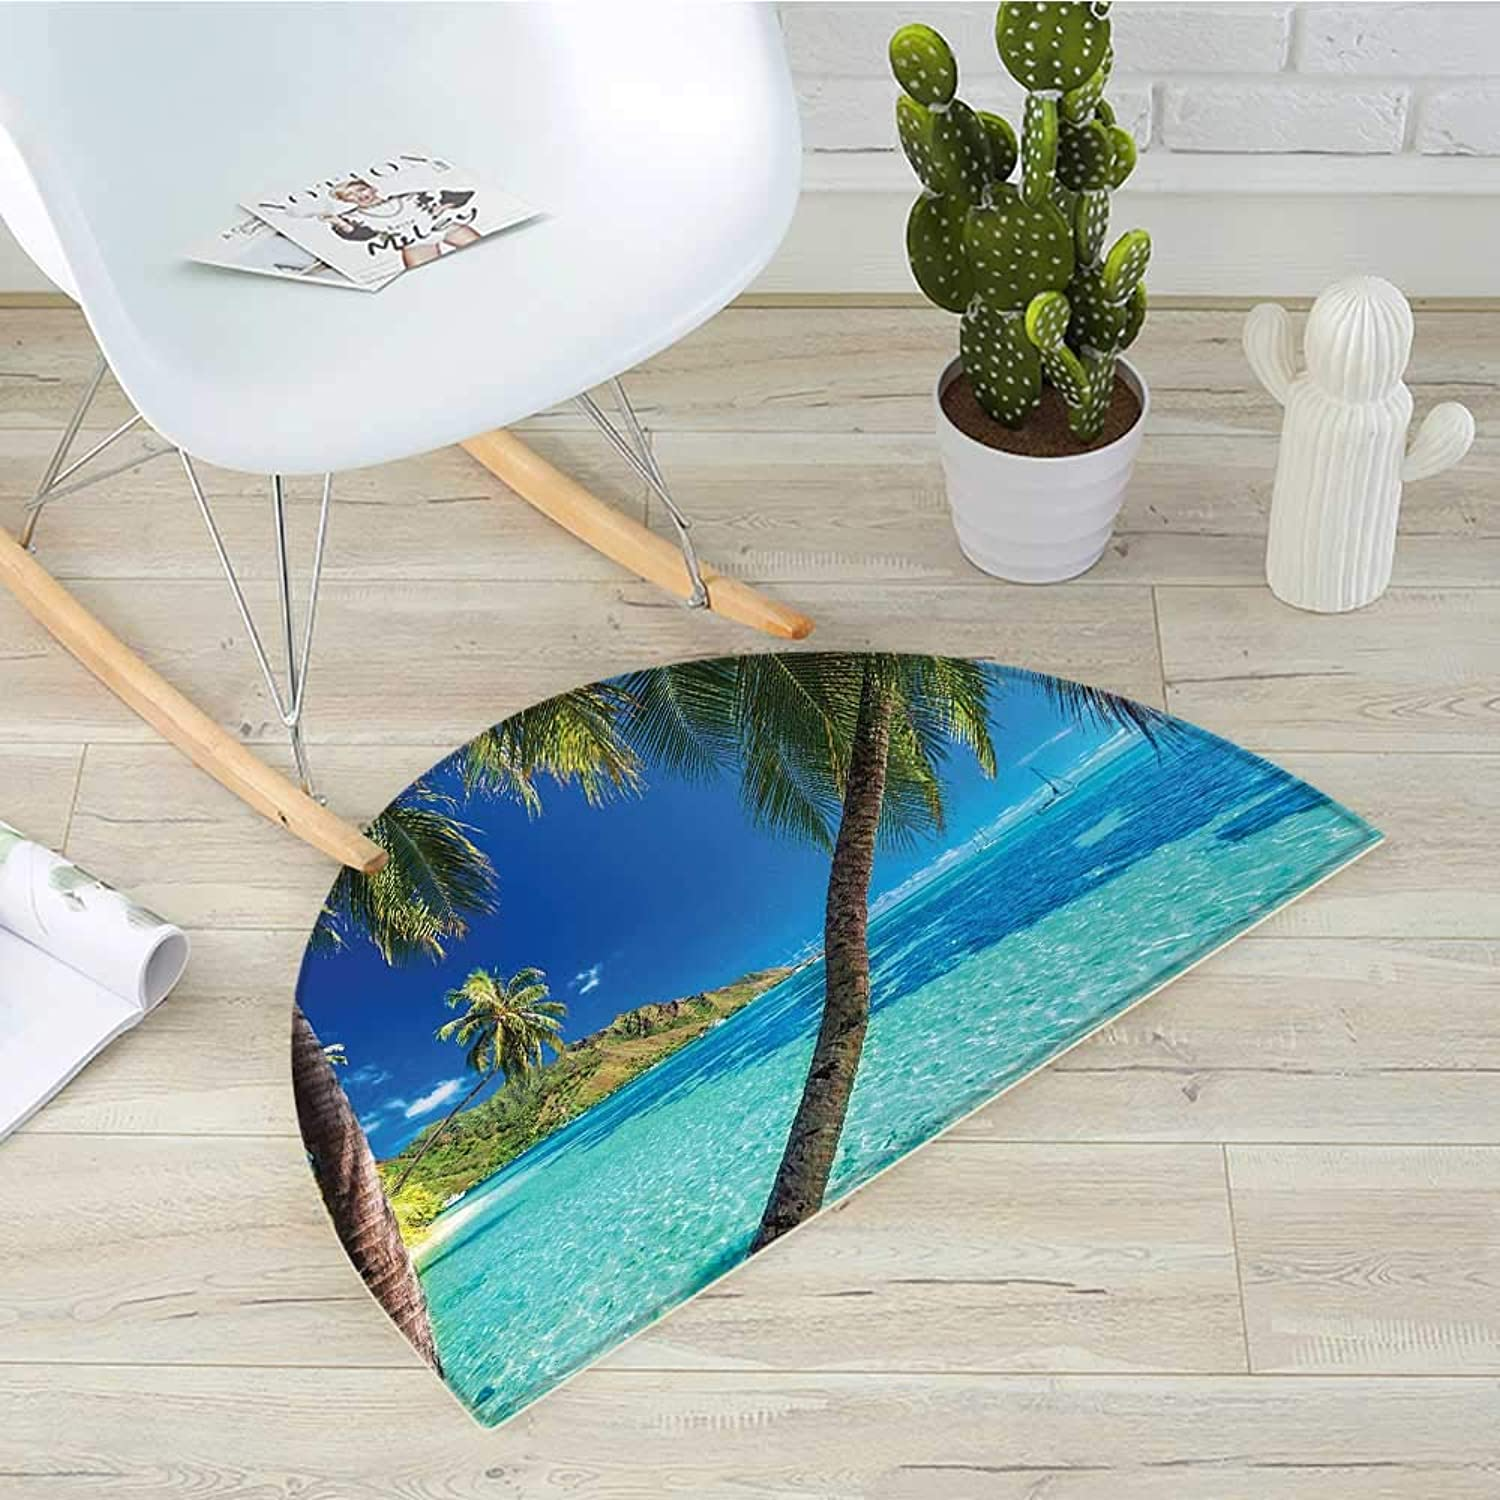 Ocean Semicircle Doormat Image of a Tropical Island with Palm Trees and Clear Sea Beach Theme Print Decor Halfmoon doormats H 39.3  xD 59  Turquoise bluee